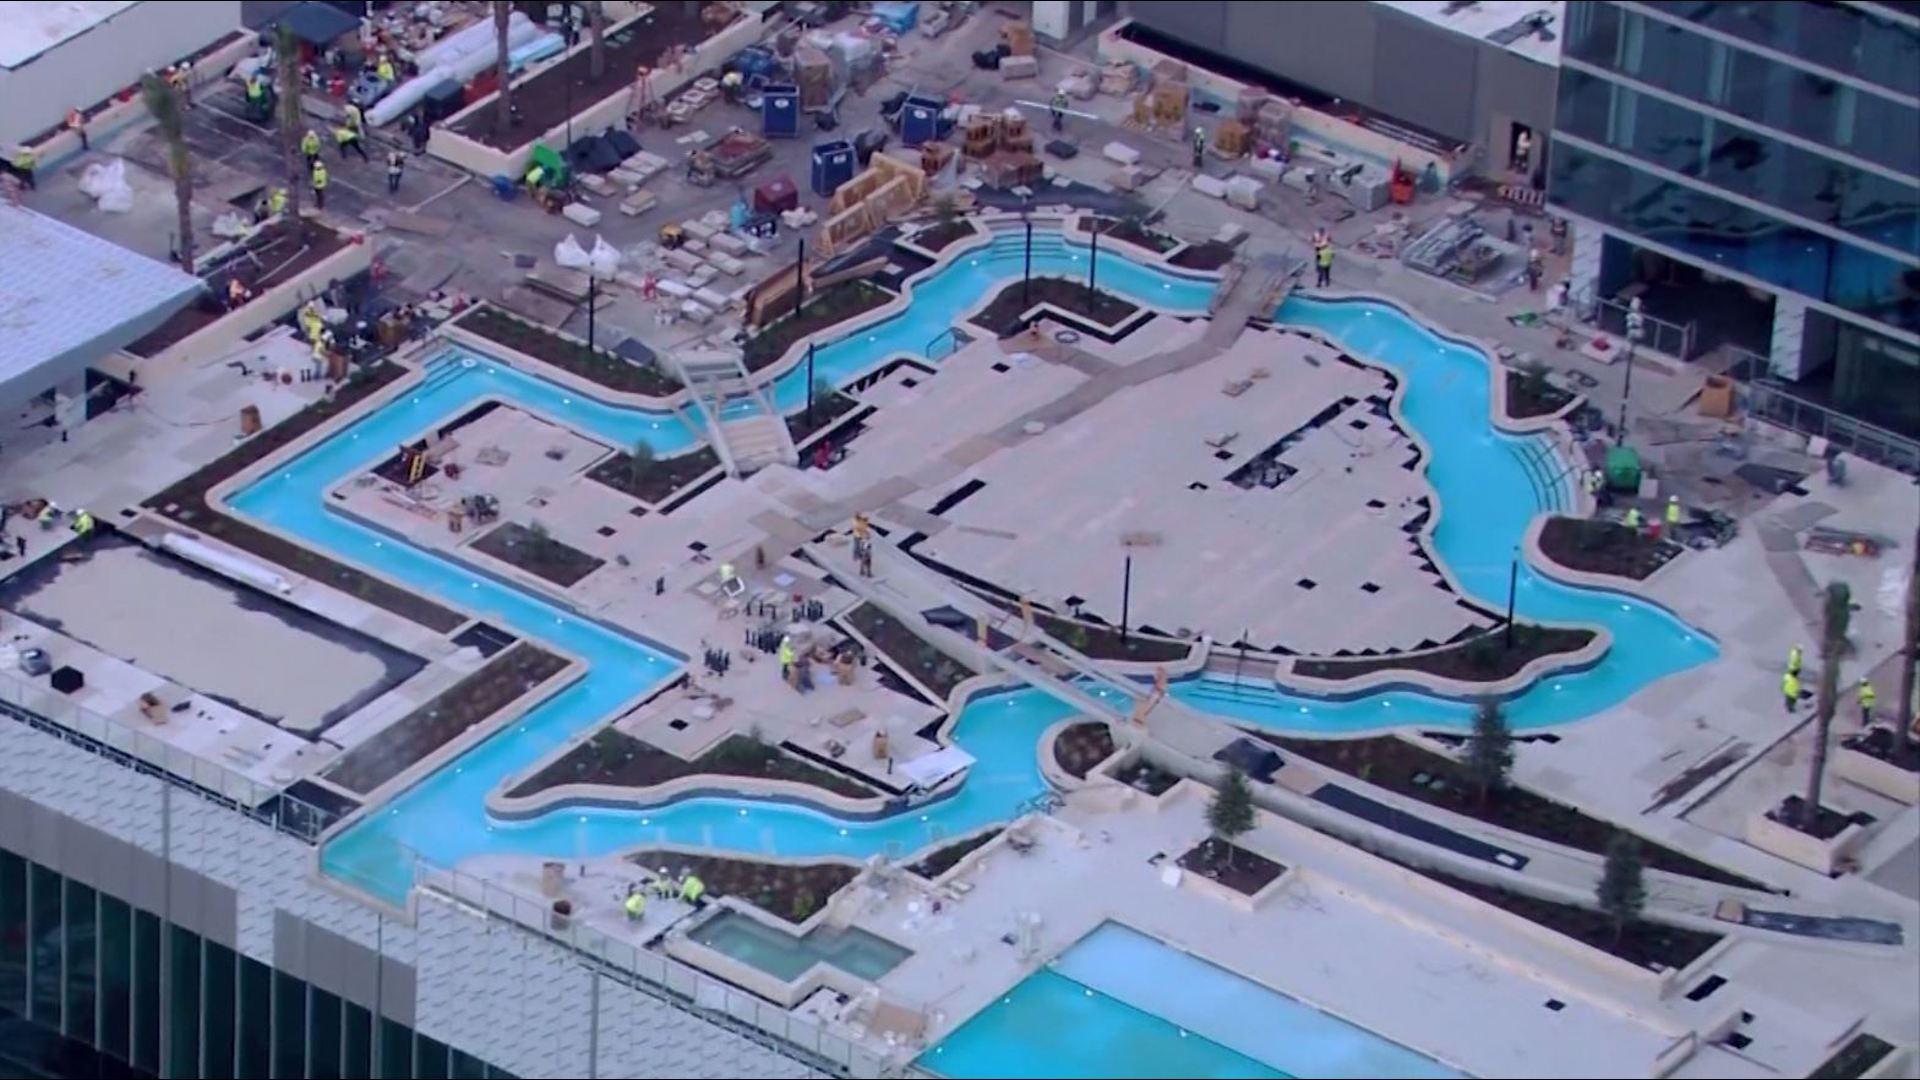 Houston S Texas Shaped Lazy River Pool In Running To Be Coolest Spot On The Planet Khou Com